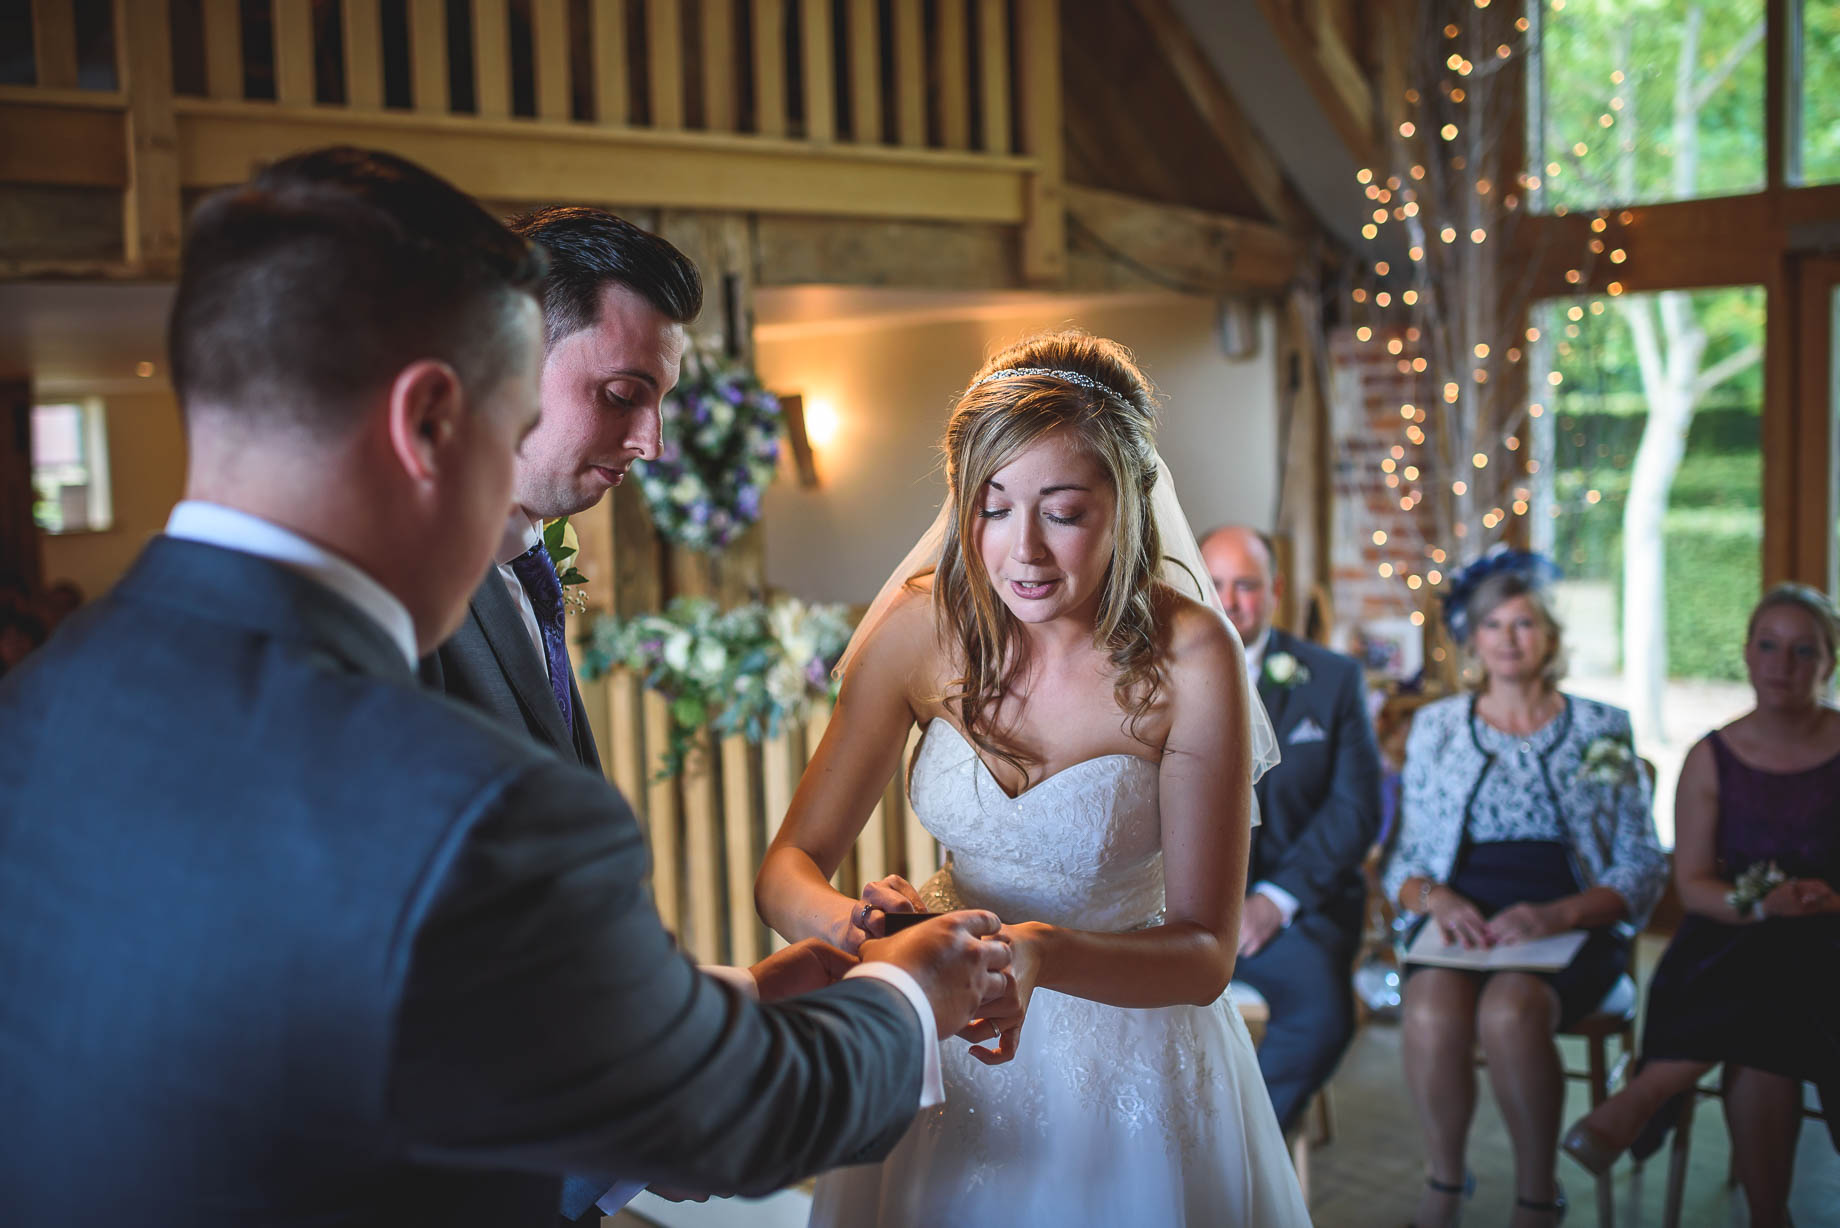 Bury Court Barn wedding photography - Guy Collier - Kirsty and Lewis (62 of 150)